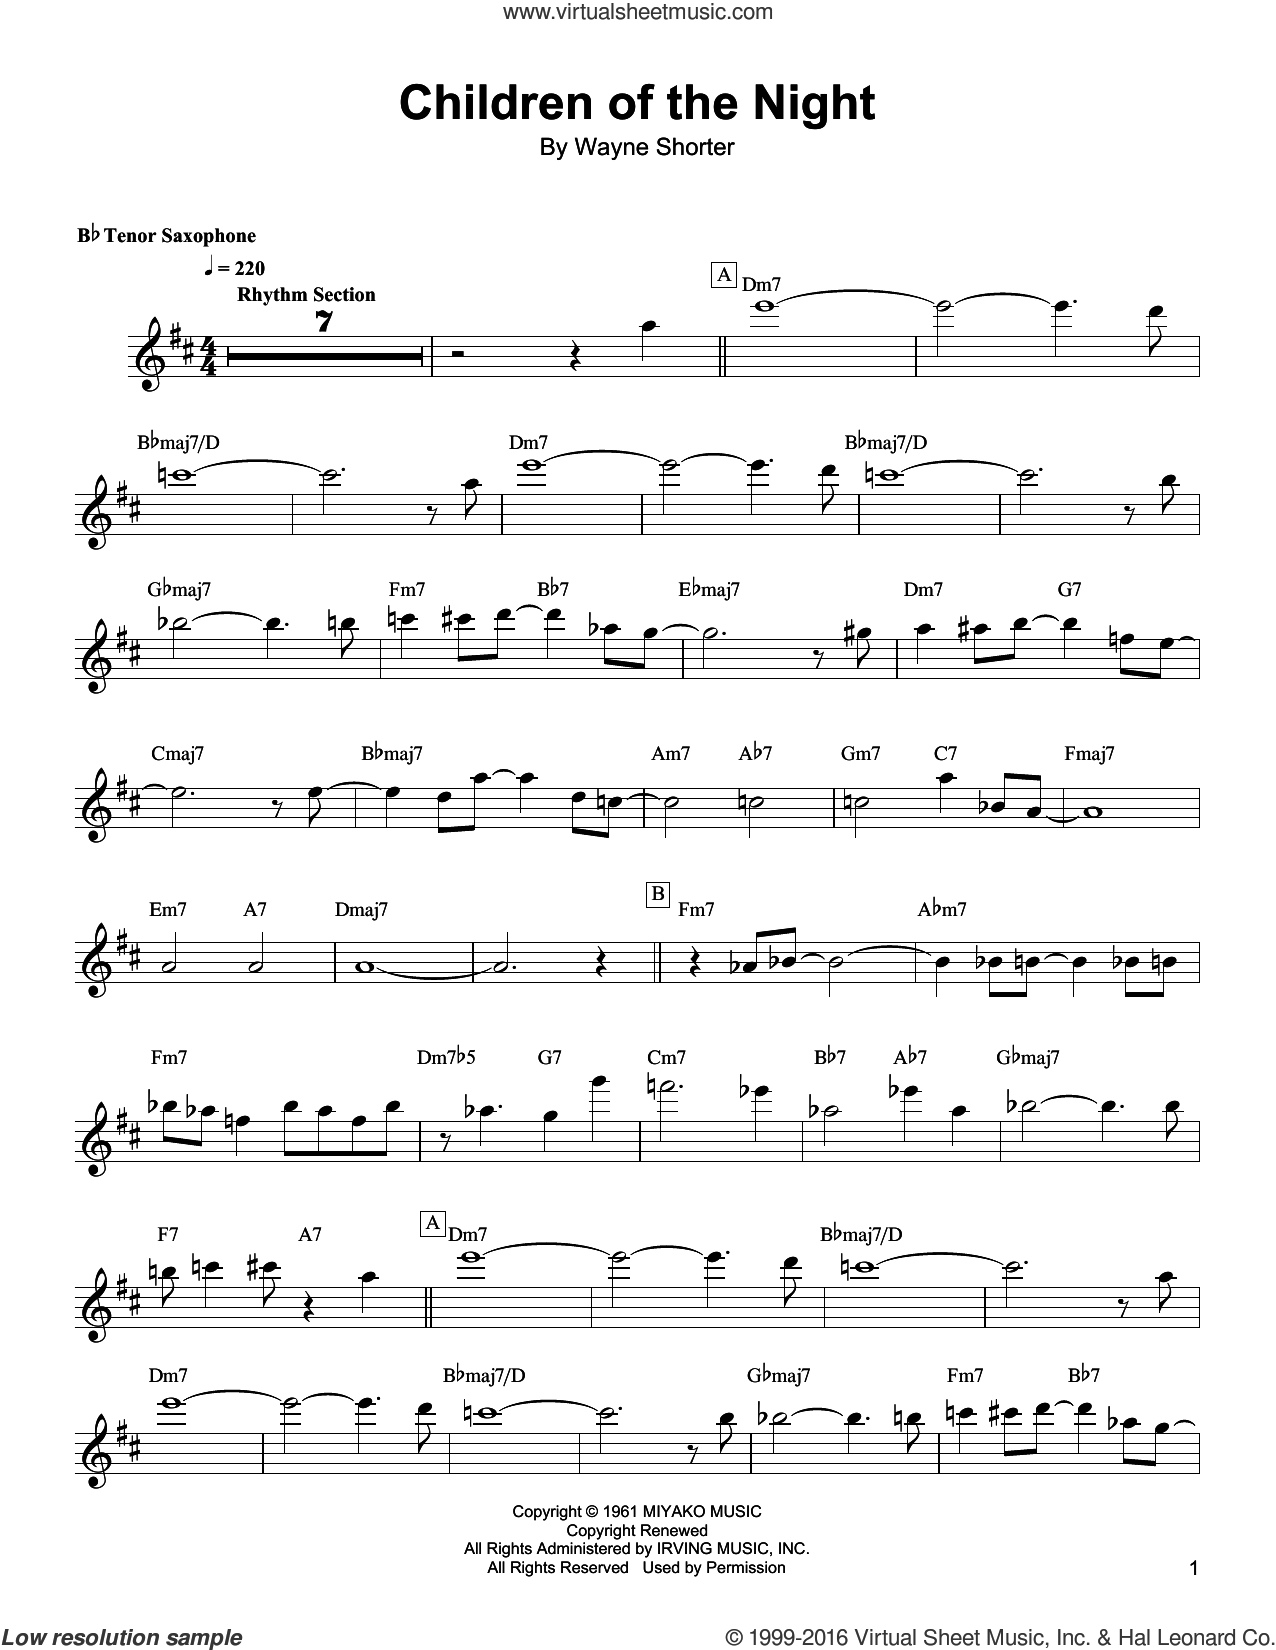 Children Of The Night sheet music for tenor saxophone solo (transcription) by Wayne Shorter. Score Image Preview.